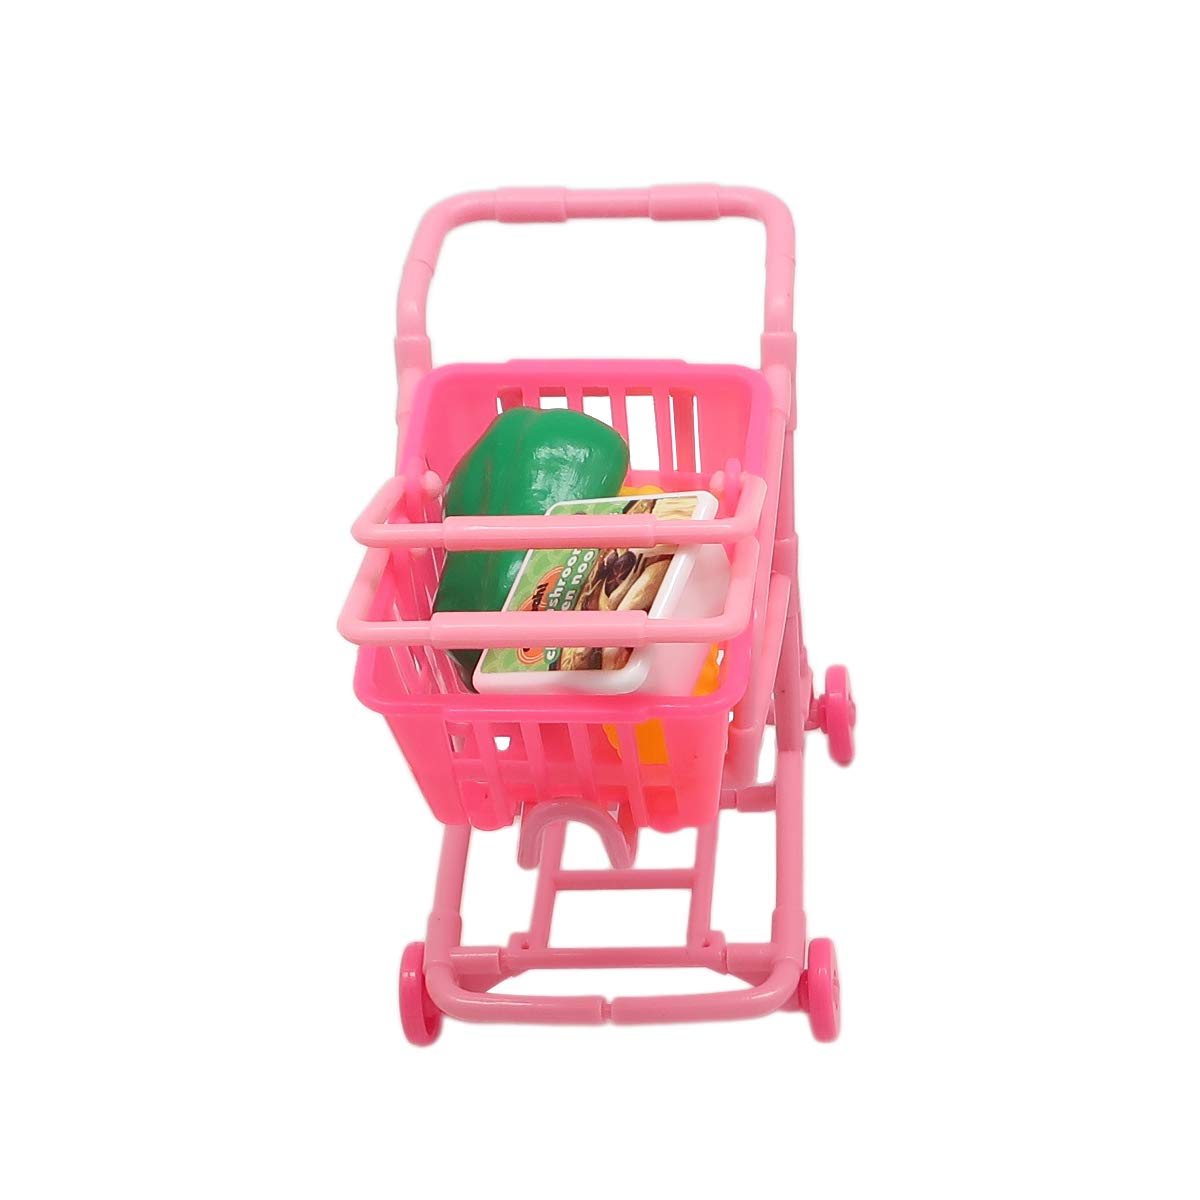 Mini Shopping Set for Kids - Ideal Pretend Play Kit for 3+- Features Realistic Miniature Grocery Store Items, Cash Register, Shopping Cart ~ Great Birthday by Forest & Twelfth Kids (Image #4)